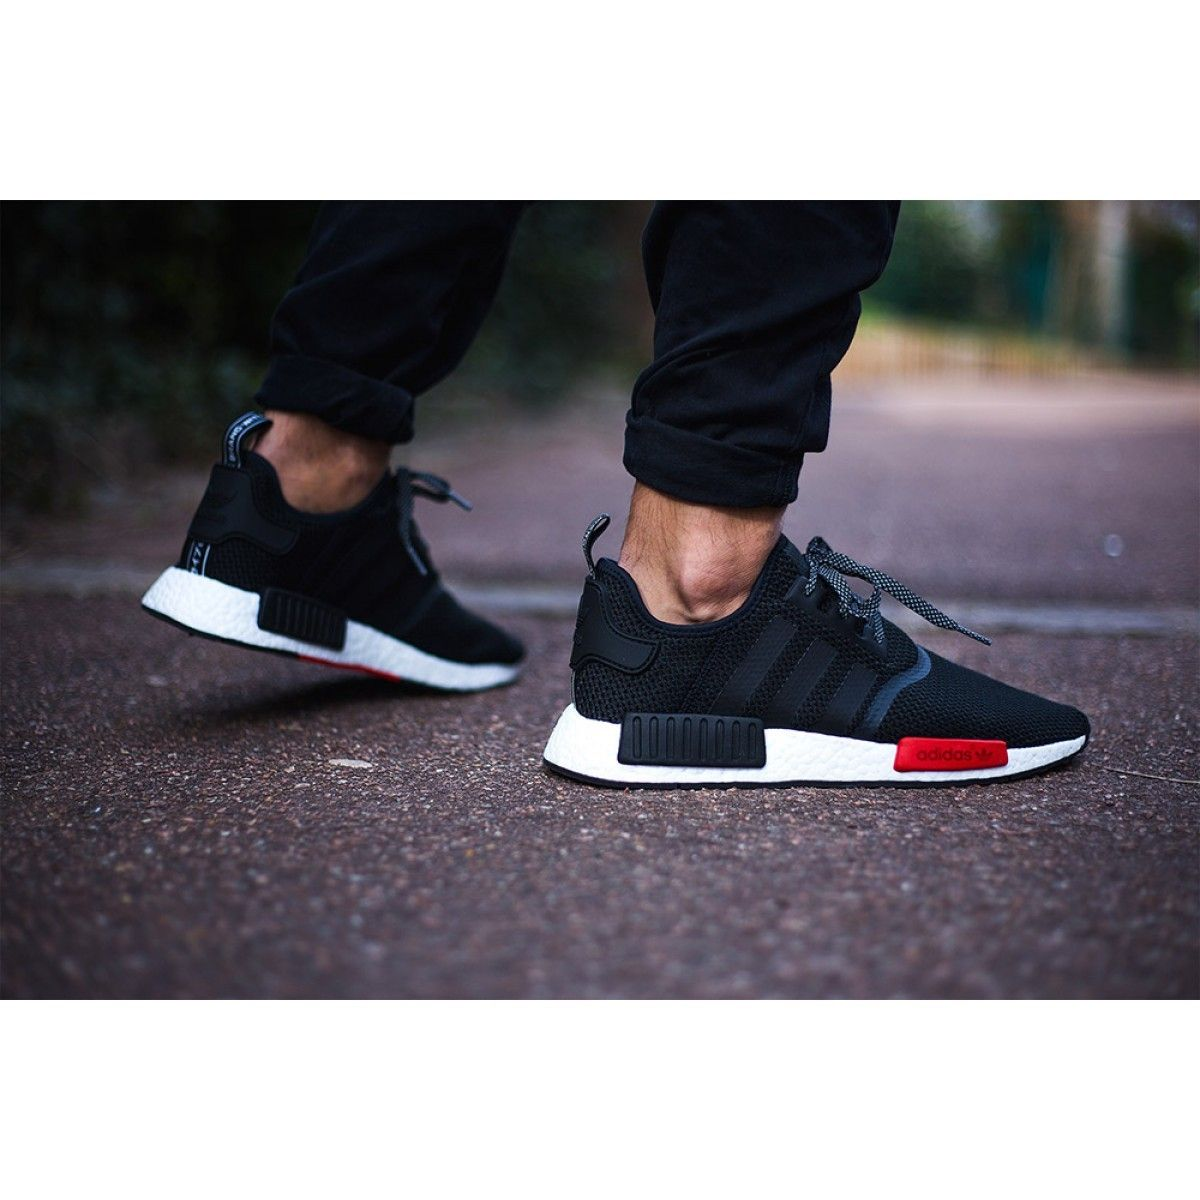 fotos adidas nmd chicas footlocker